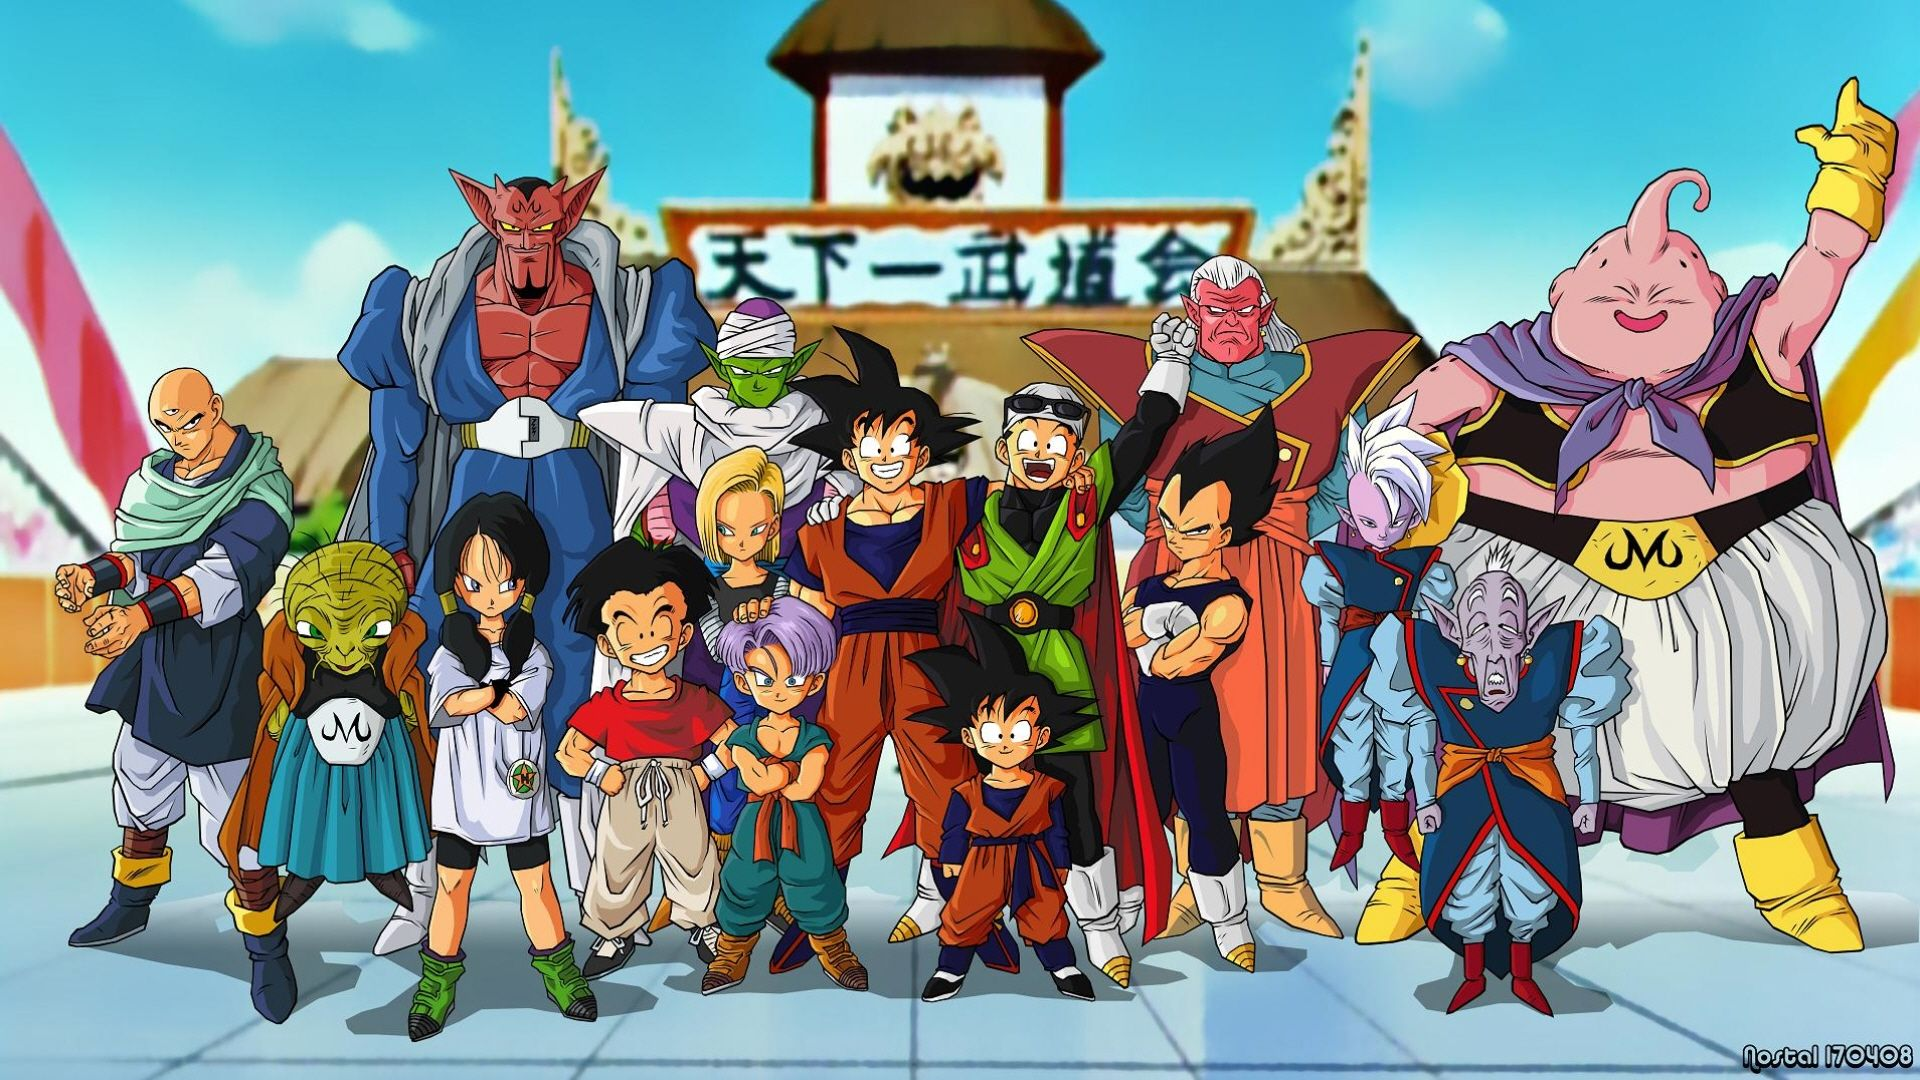 Anime Dragon Ball Z All Characters Images Pictures Hd 1920x1080px For Desktop Wallpapers Anime Dragon Ball Dragon Ball Z Dragon Ball